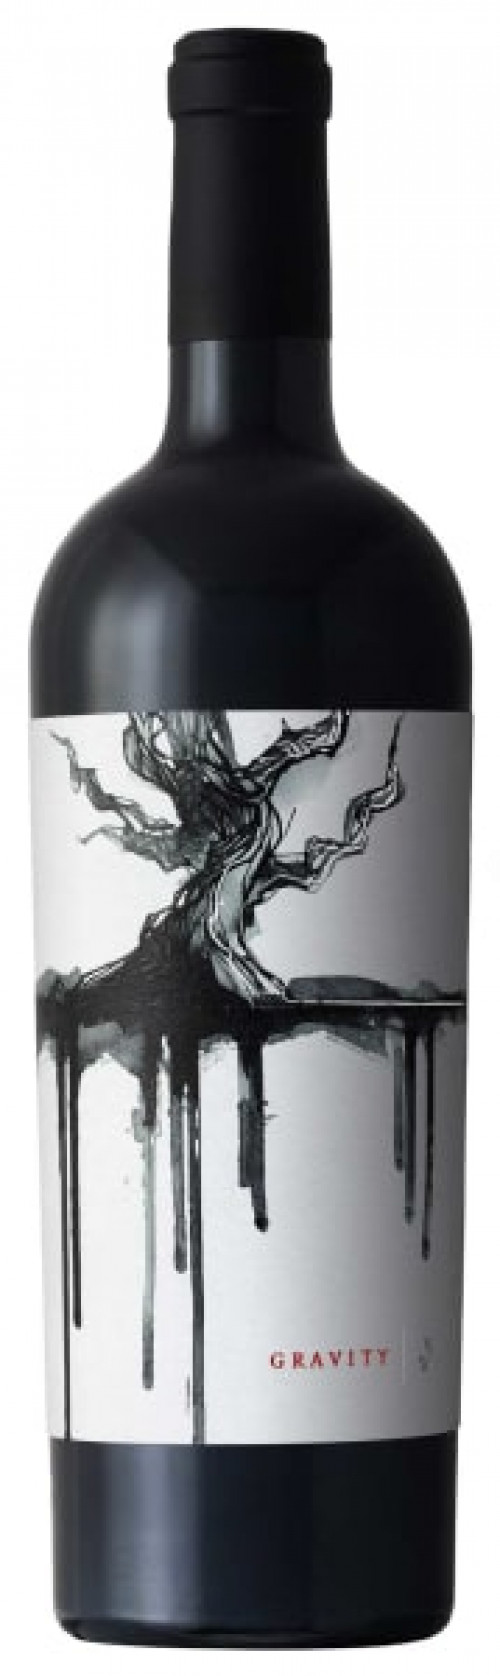 2016 Mount Peak Gravity Red 750ml